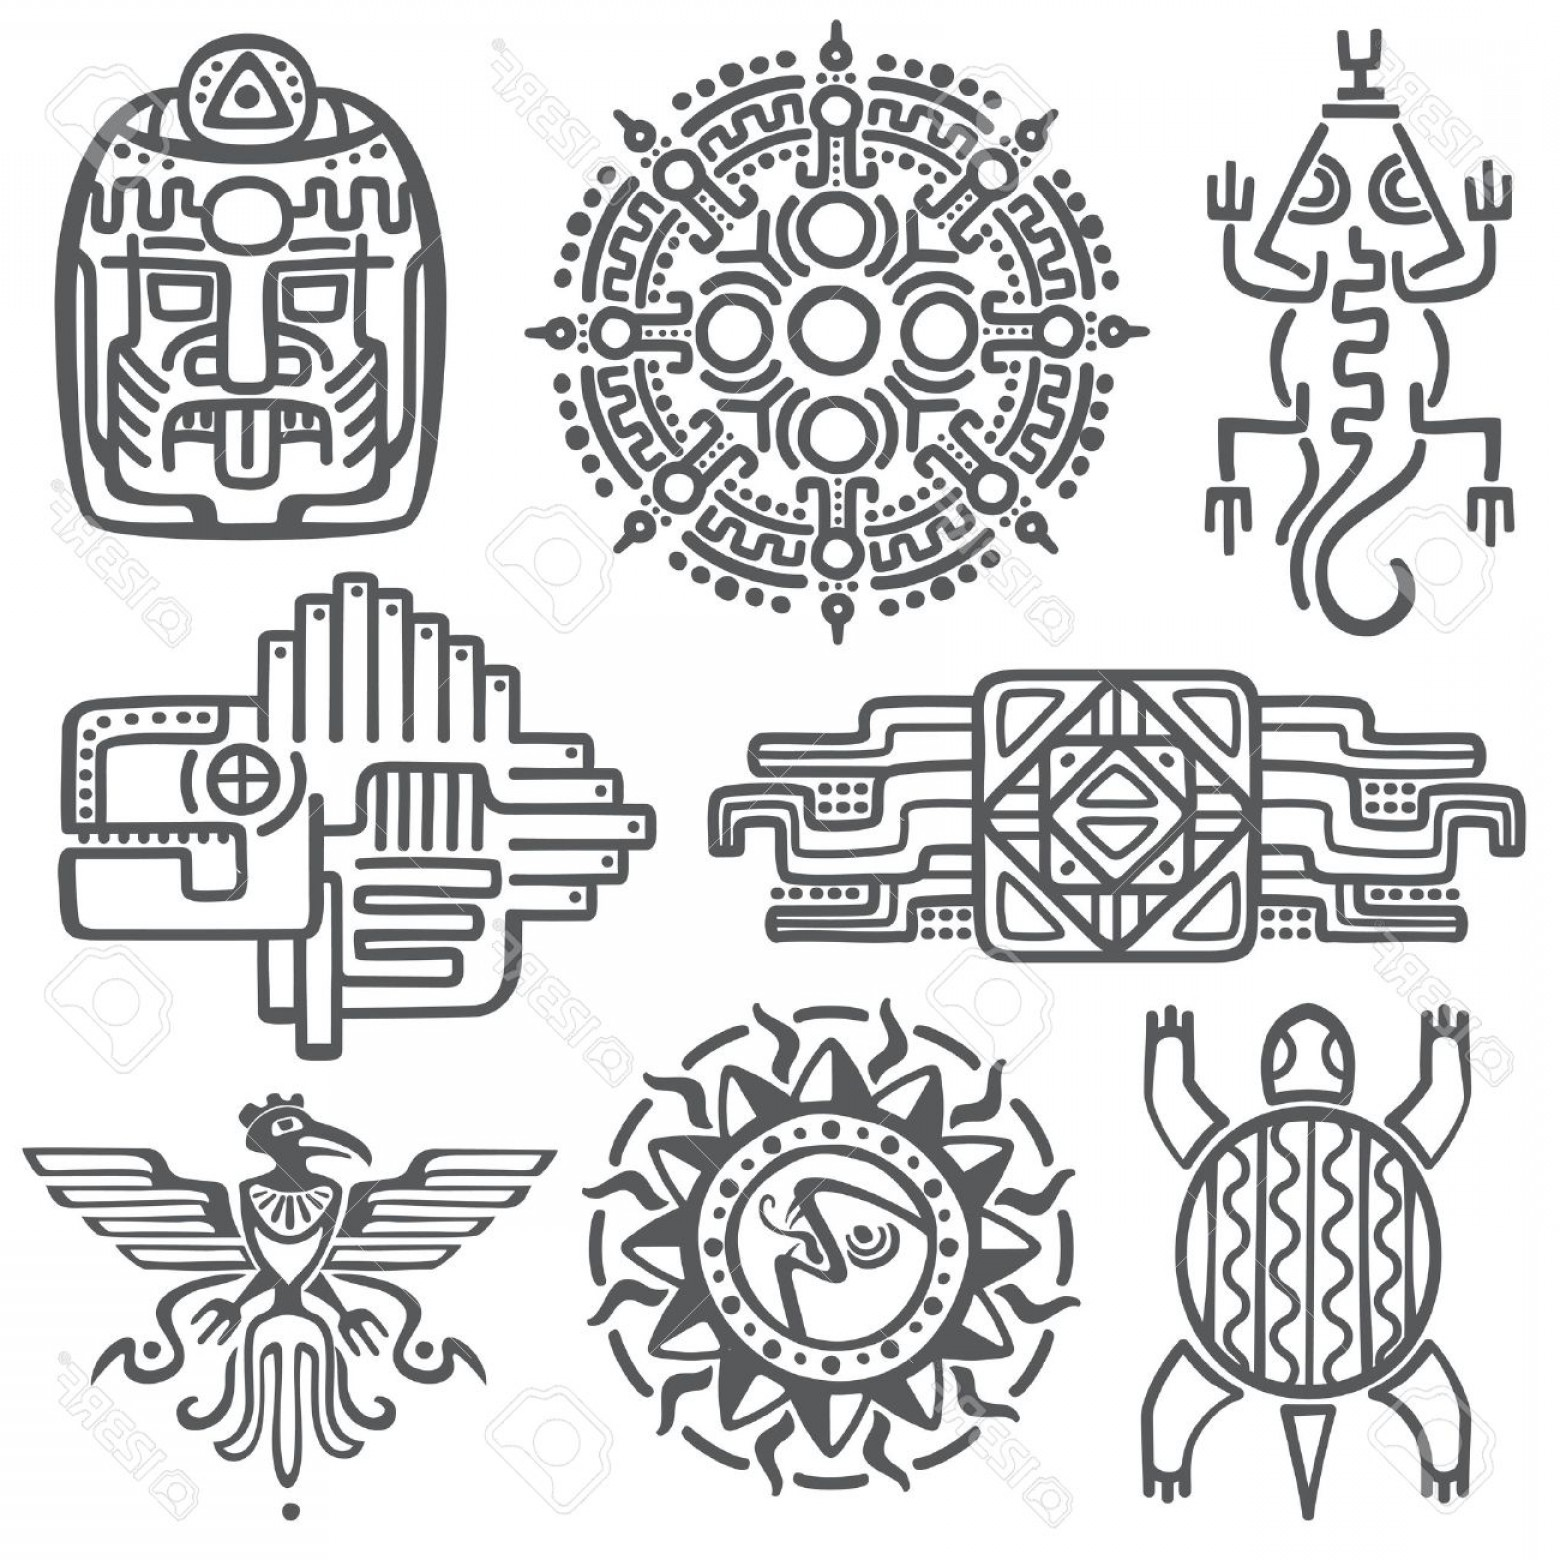 Mayan Vector: Photostock Vector Ancient Mexican Vector Mythology Symbols American Aztec Mayan Culture Native Totem Patterns Aztec An